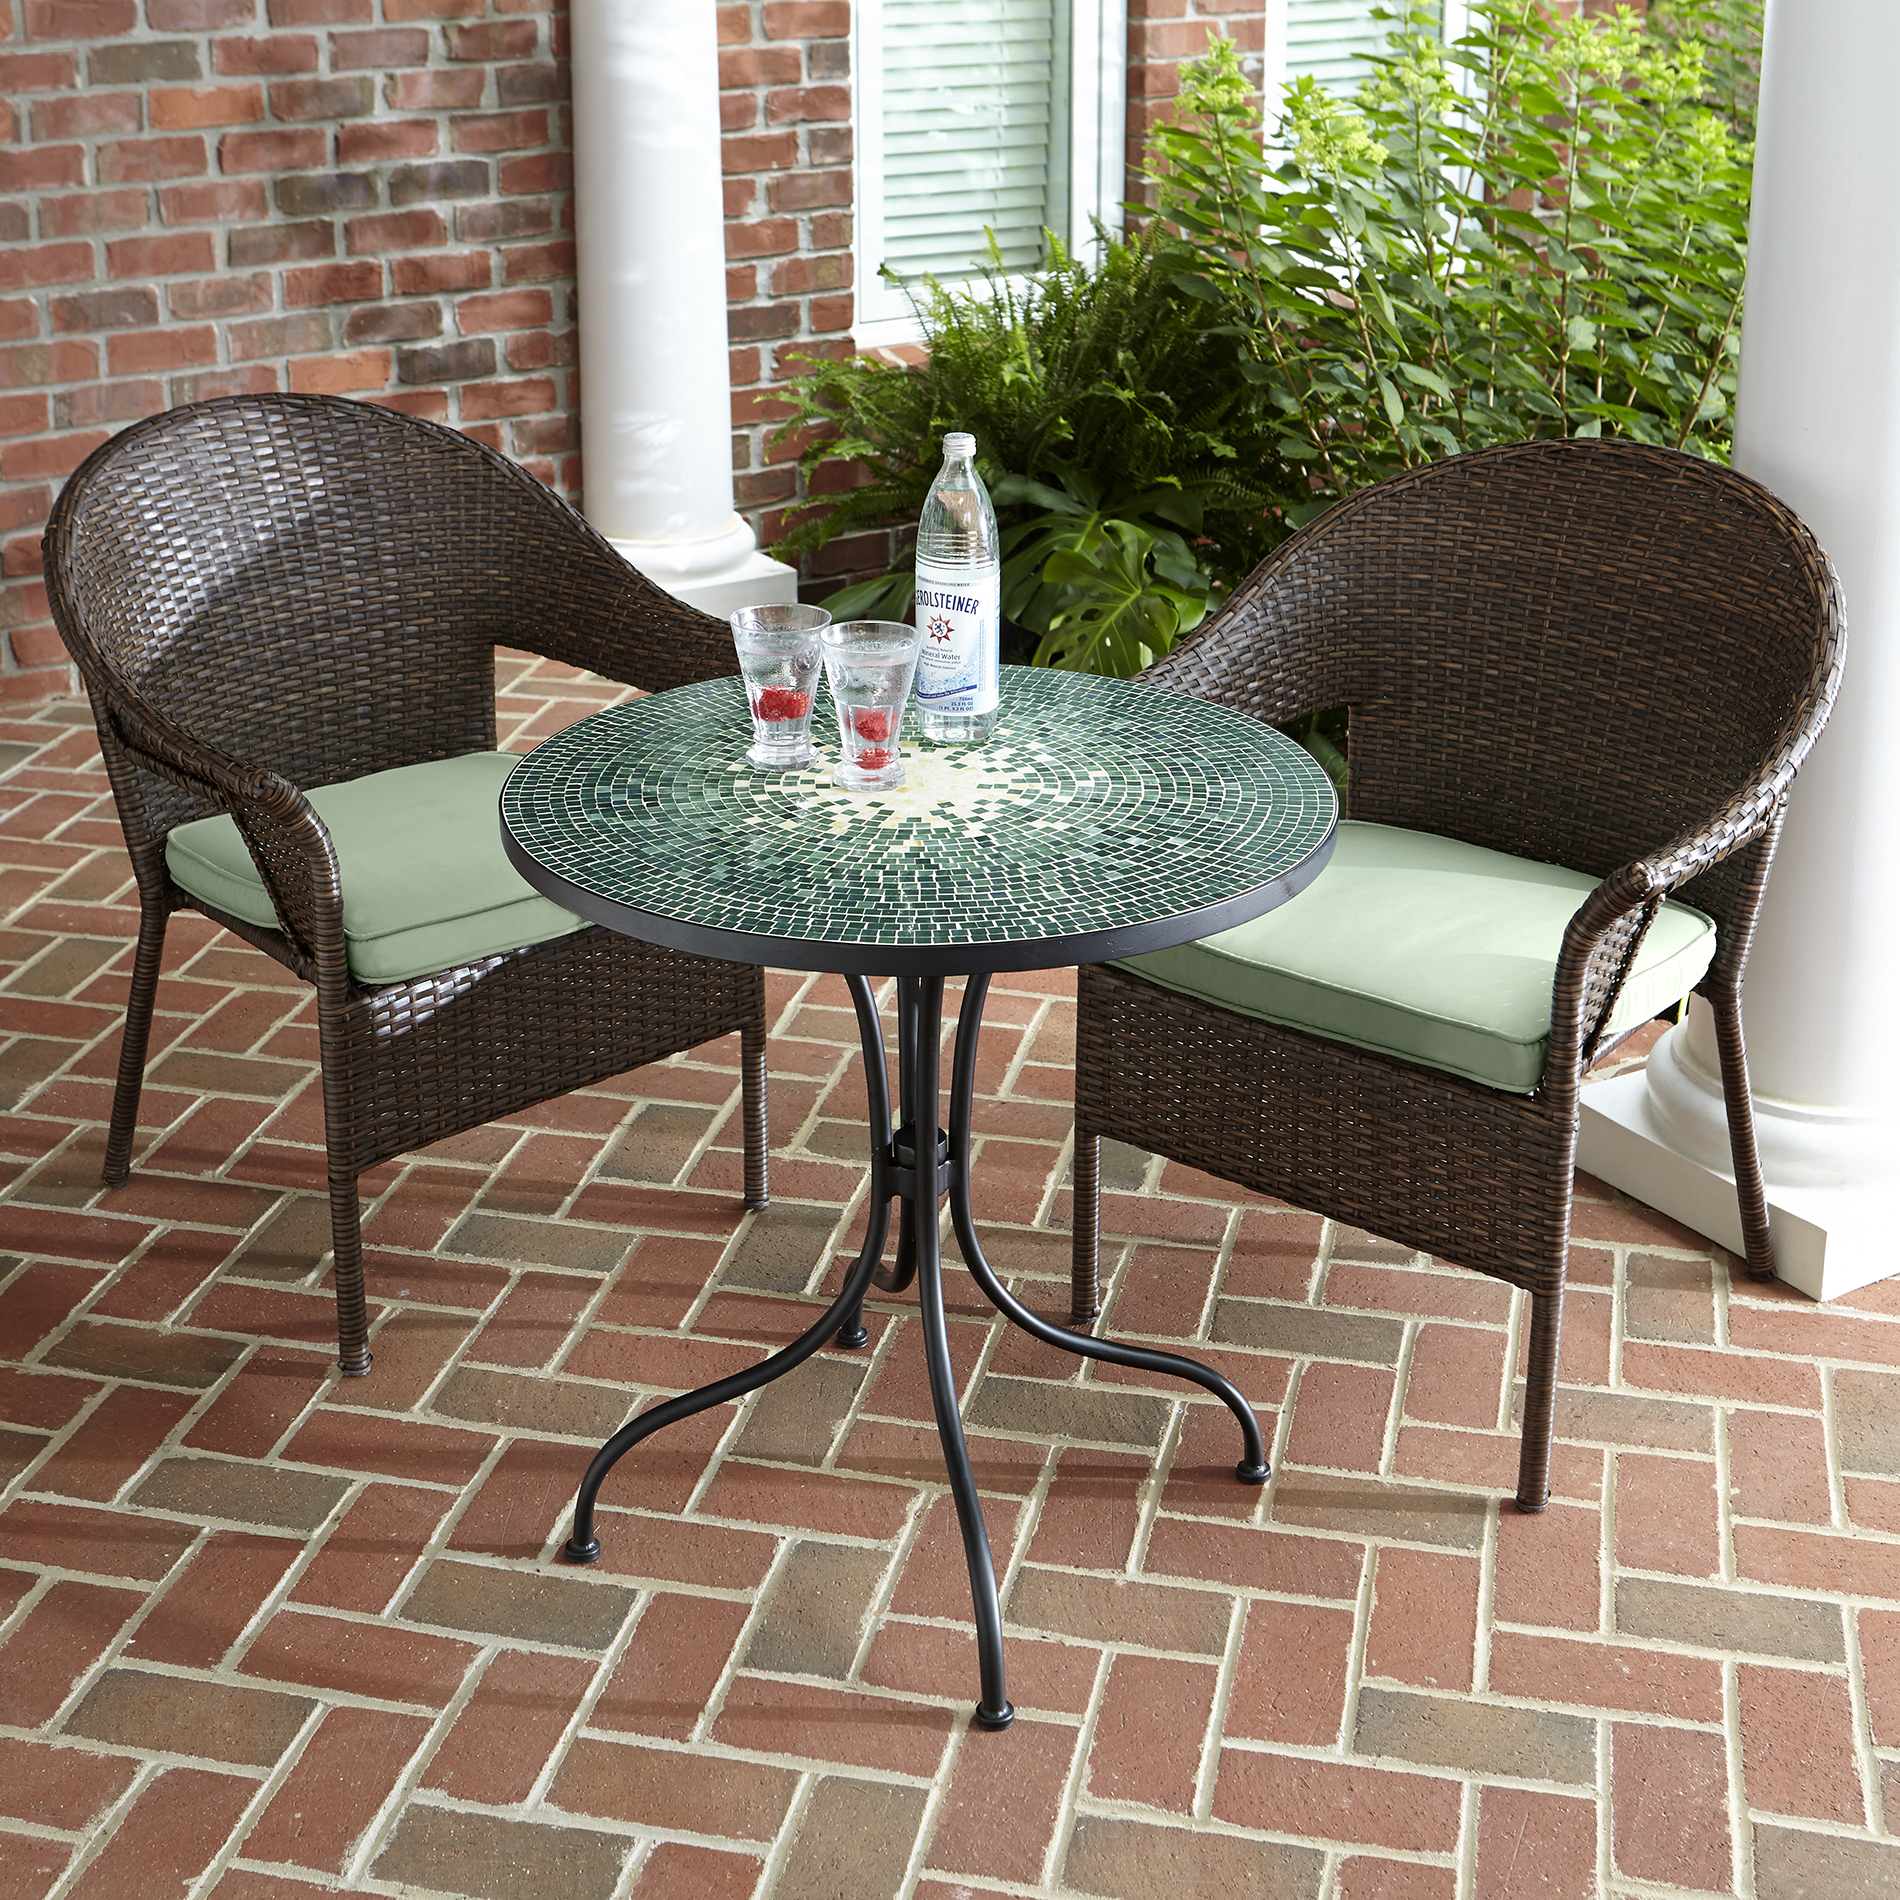 Jaclyn Smith Reece 2pk Brown Wicker Stack Chair With Green